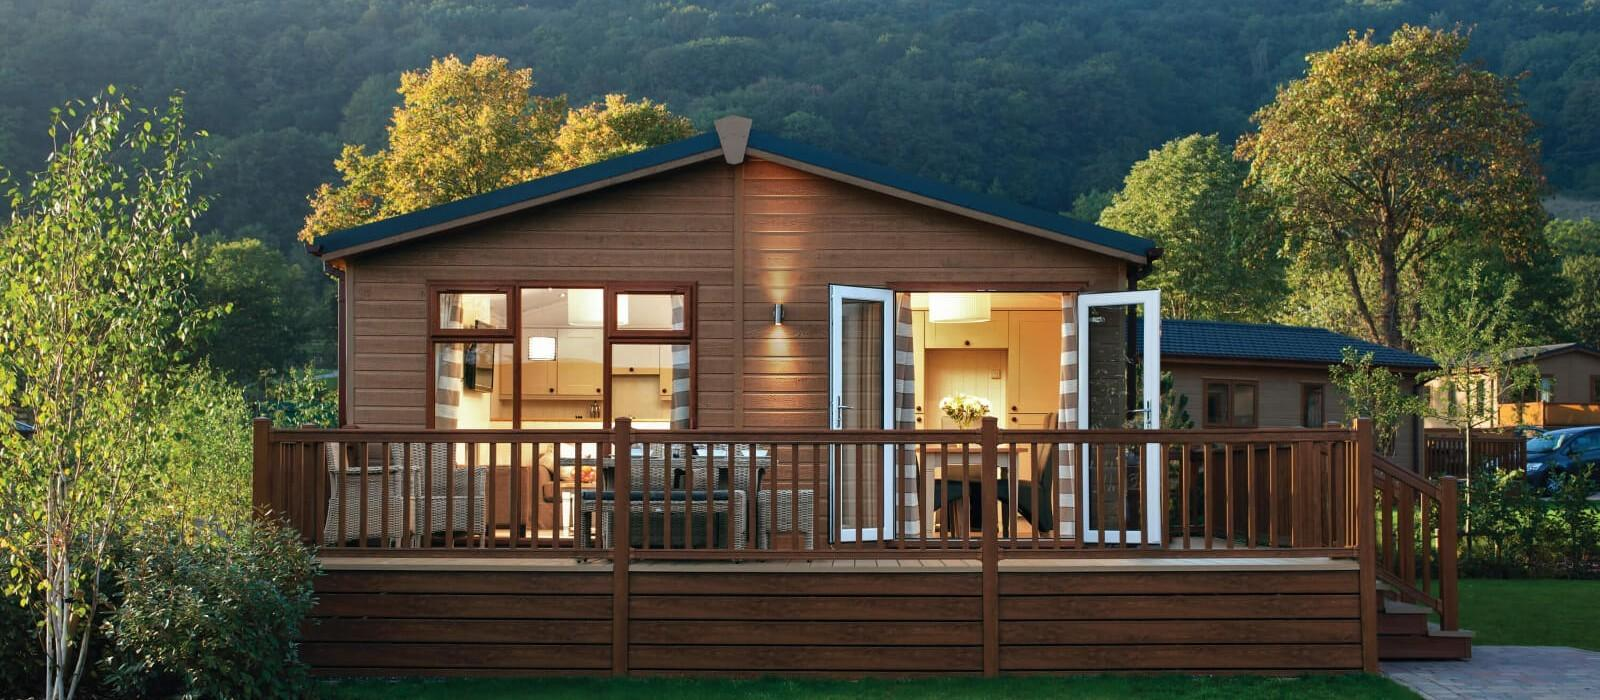 Lodges Holiday Homes Caravans Sale Darwin Escapes